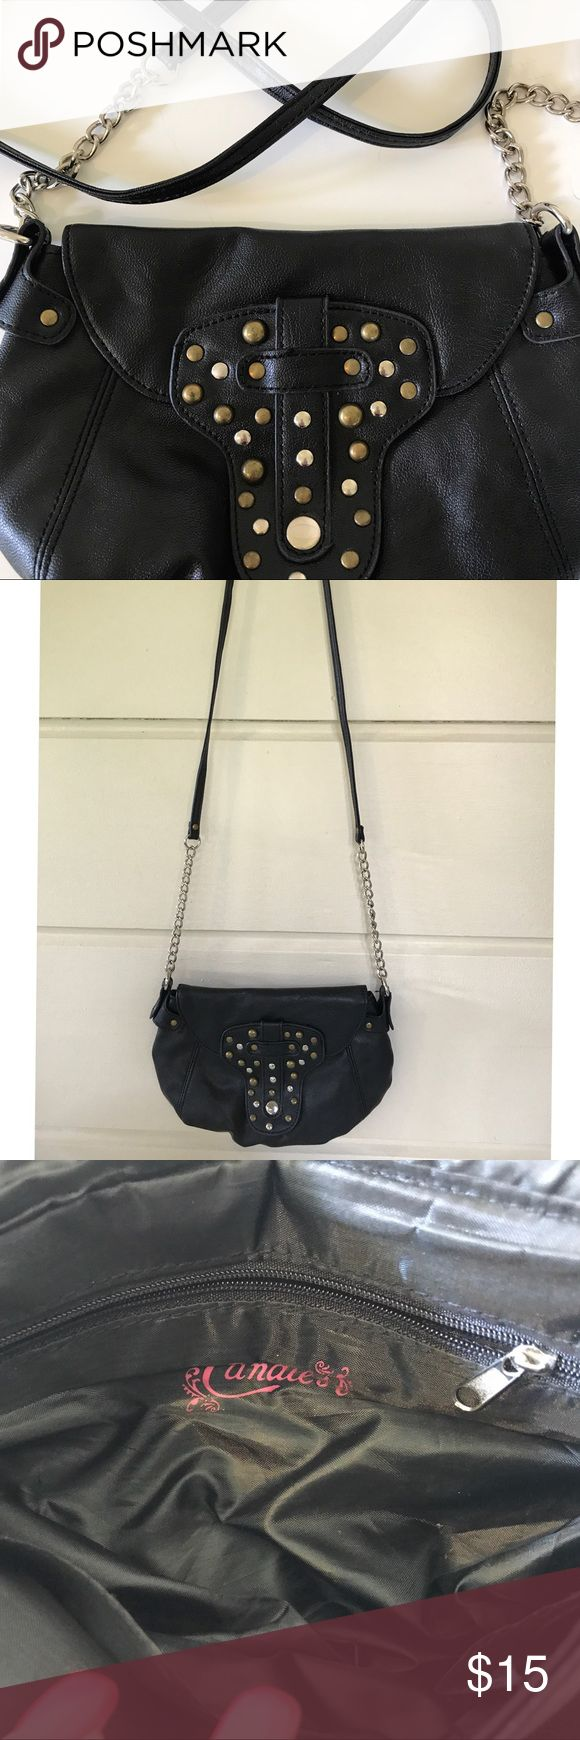 CANDIES CROSSBODY BLACK STUDDED PURSE CANDIES CROSSBODY BLACK STUDDED PURSE CANDIES Bags Crossbody Bags